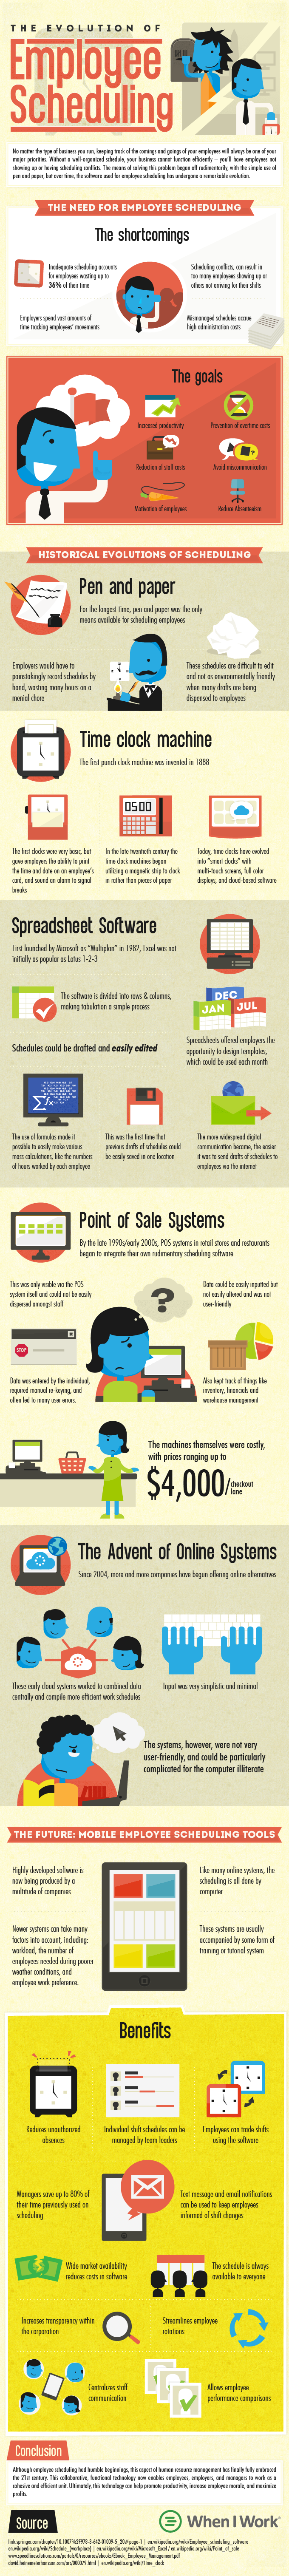 evolution-of-employee-scheduling-infographic